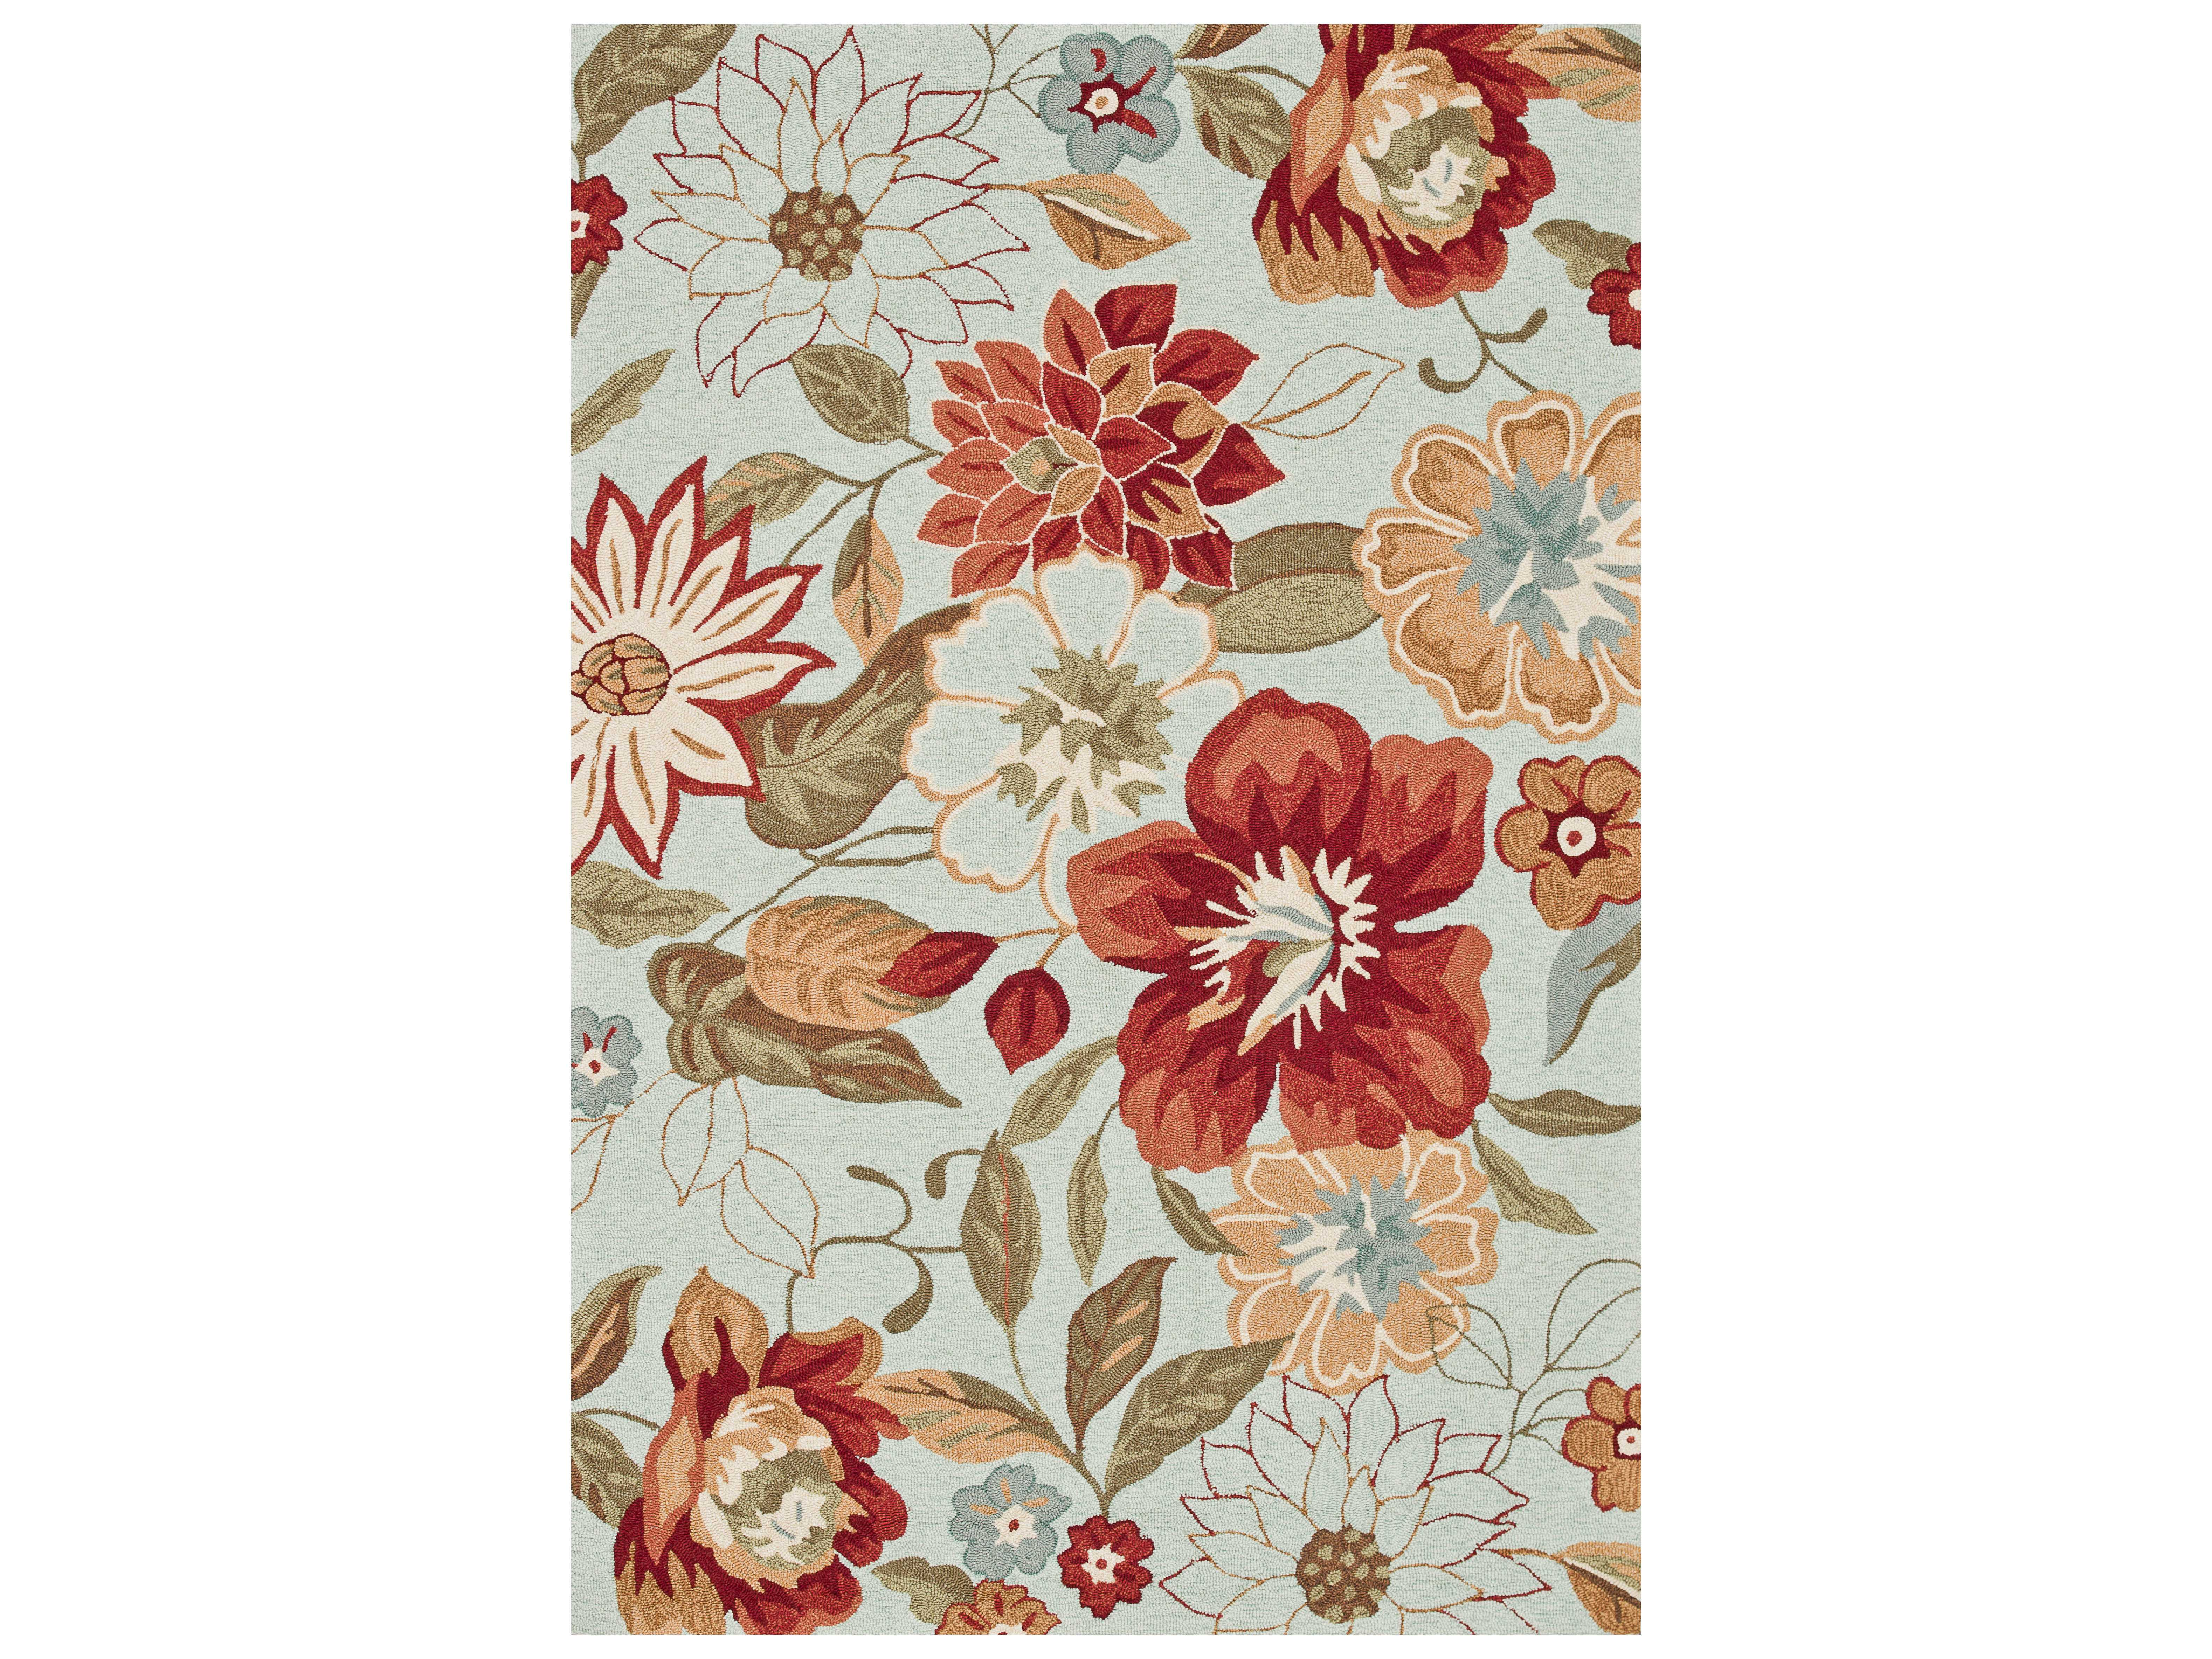 Loloi Rugs Summerton Srs04 Mist Red Area Rug